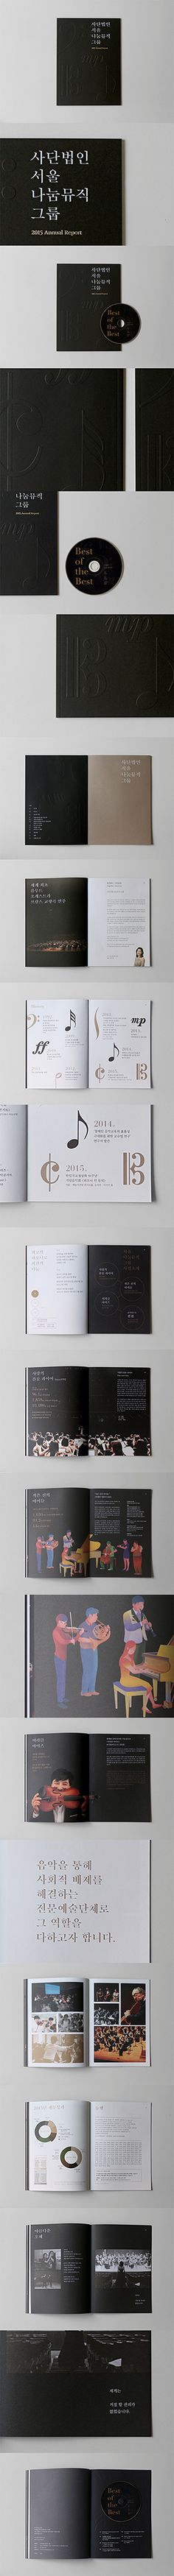 """Check out new work on my @Behance portfolio: """"Seoul Nanum Music Group 2015 Anual Report"""" http://be.net/gallery/46989447/Seoul-Nanum-Music-Group2015-Anual-Report"""